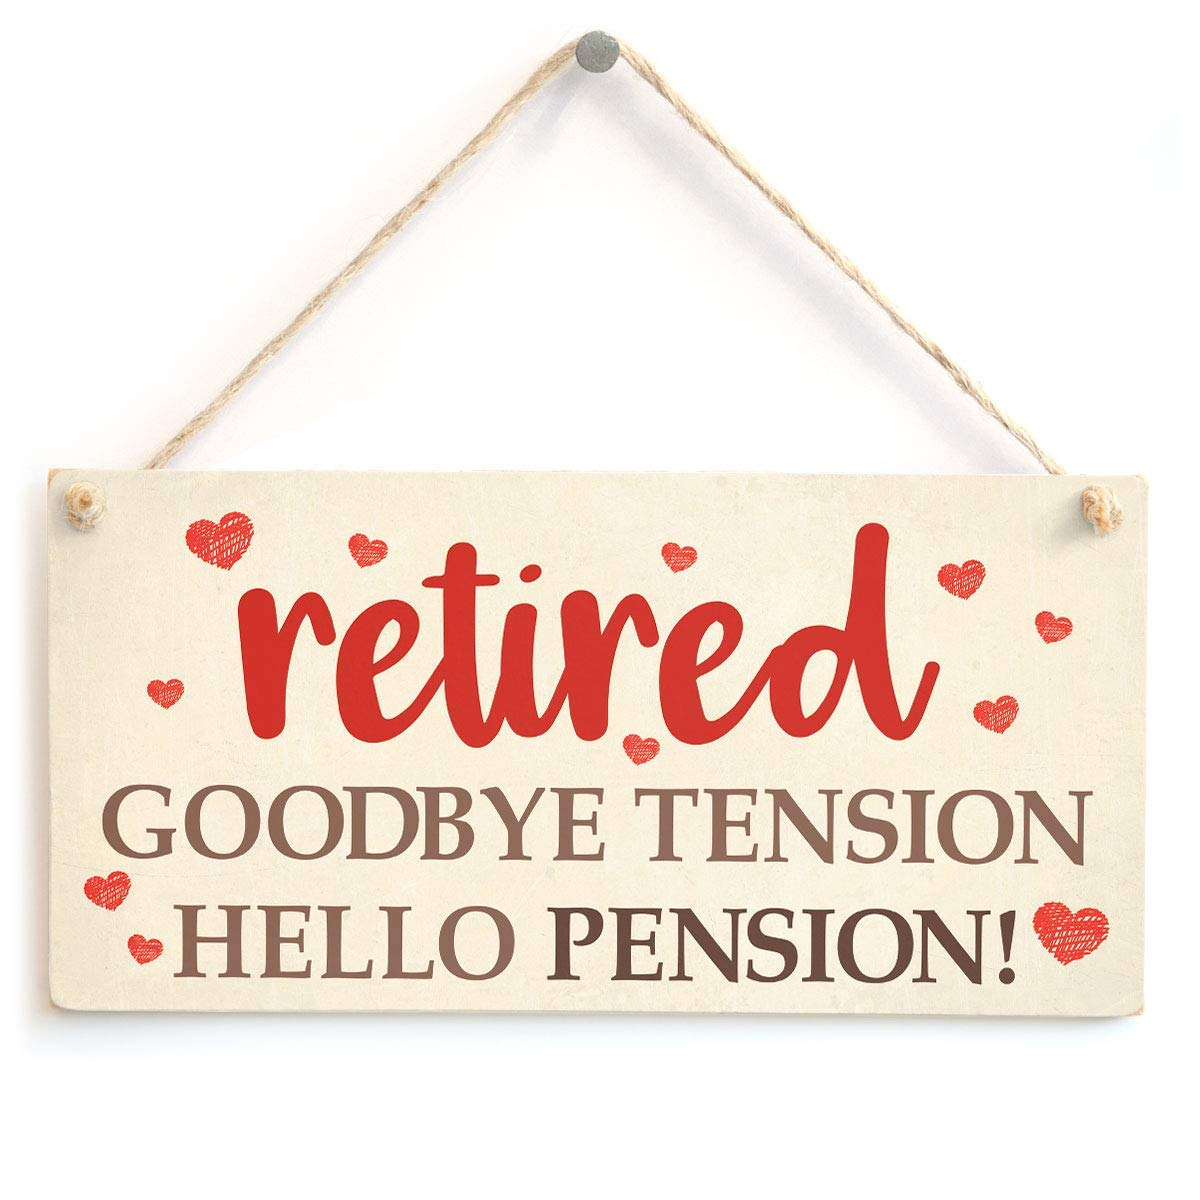 RABEAN Retired Goodbye Tension Hello Pension Cartel de ...